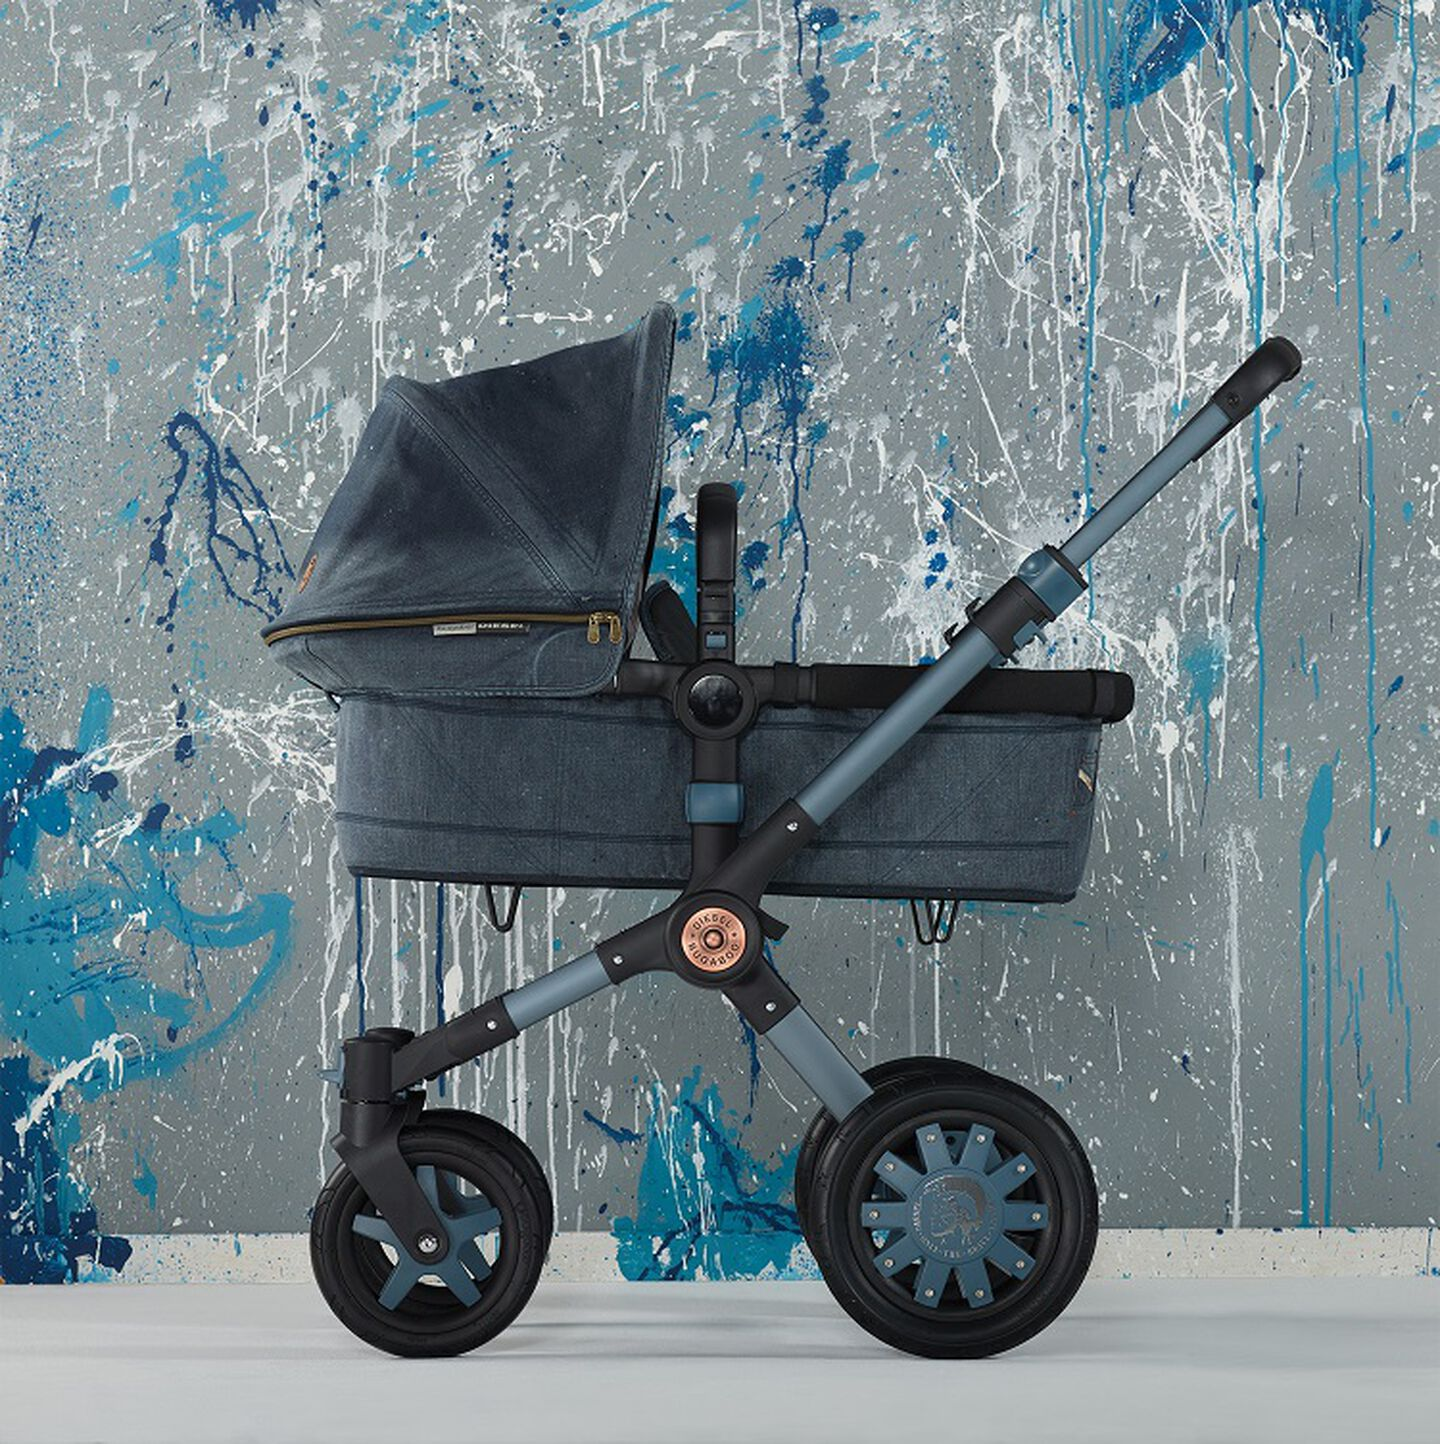 Bugaboo by DIESEL | Blog